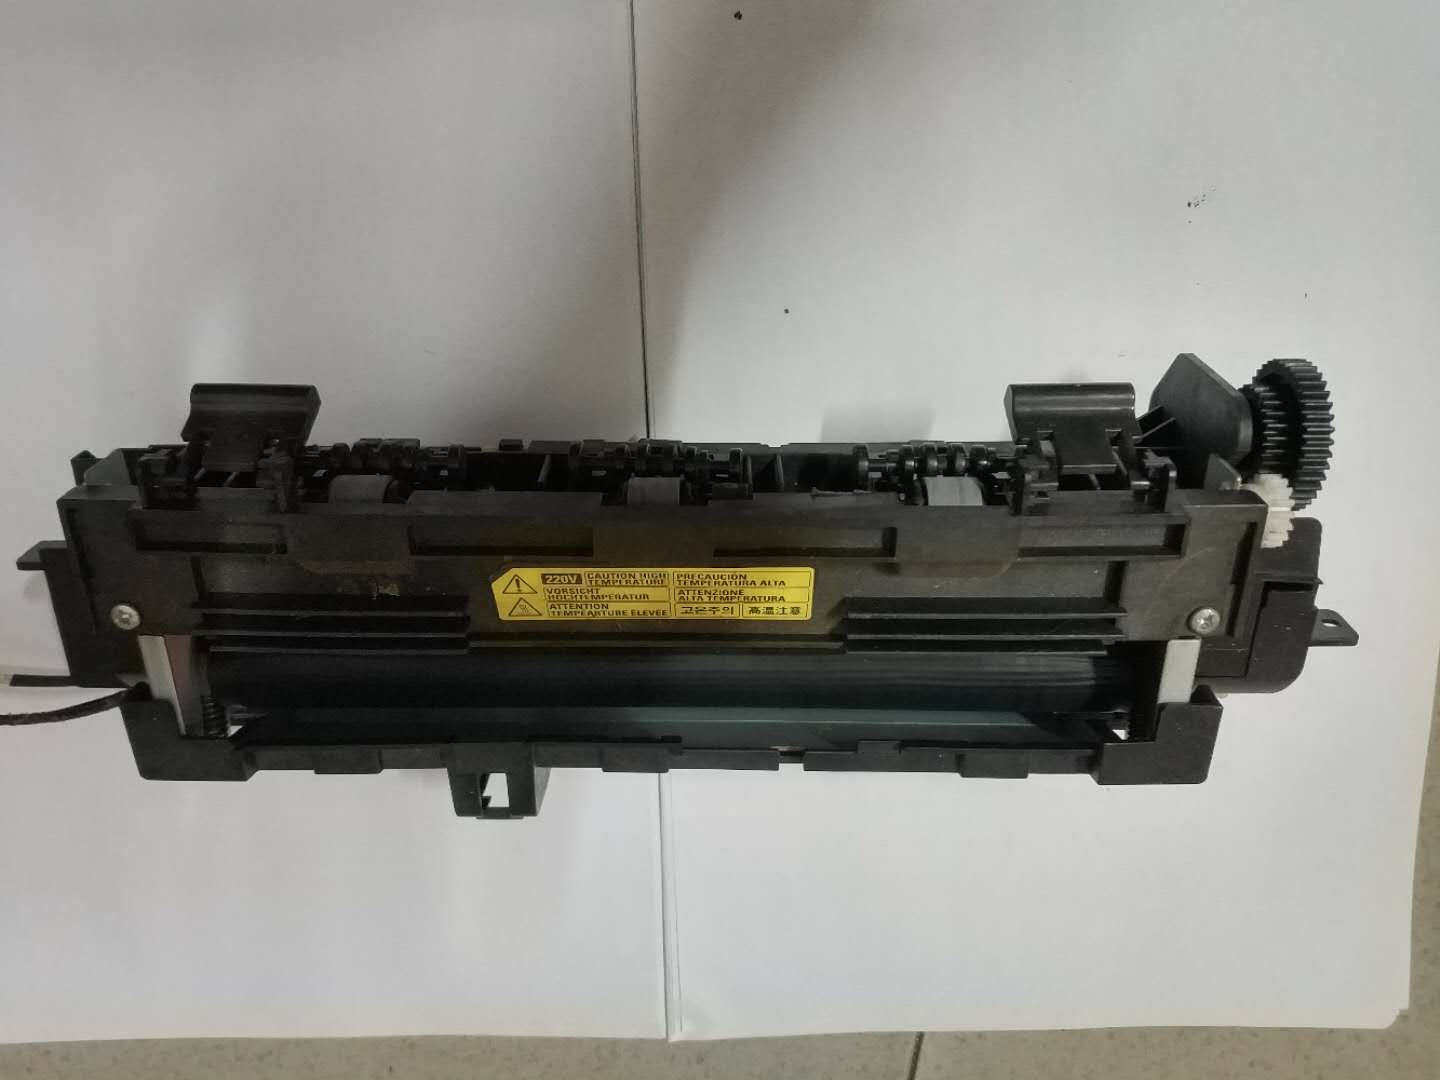 Fuser assembly for Samsung 4521hs 4321ns 4521 4321 for xerox pe220 printerFuser assembly for Samsung 4521hs 4321ns 4521 4321 for xerox pe220 printer